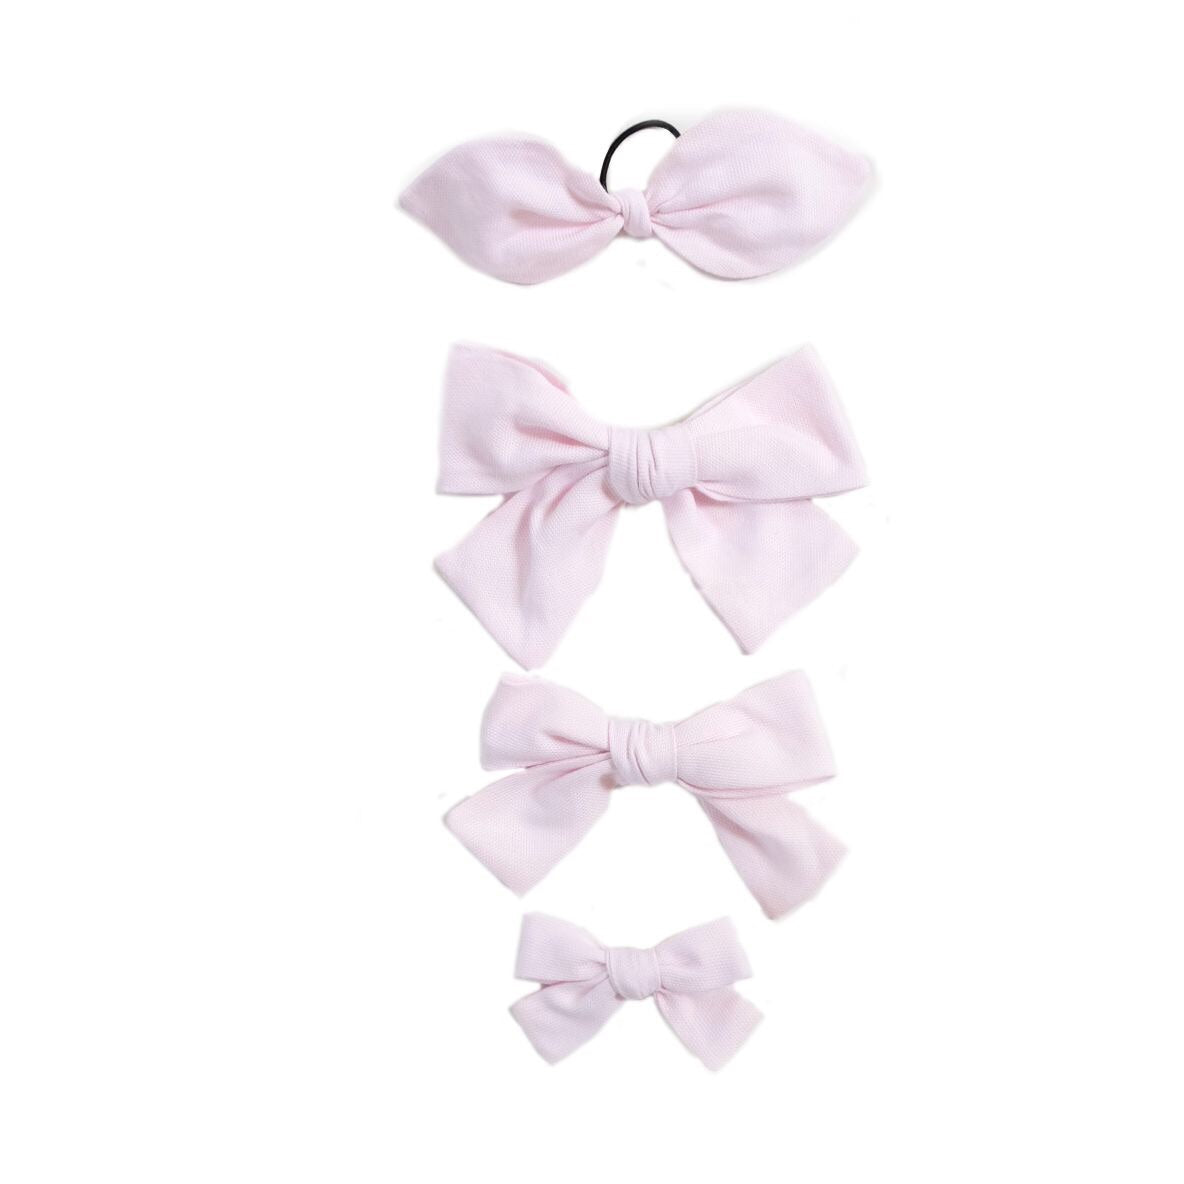 Handtied Hairbows Sweet Pea Light Pink Oxford (Sm, Med, Lg, Ponytail)